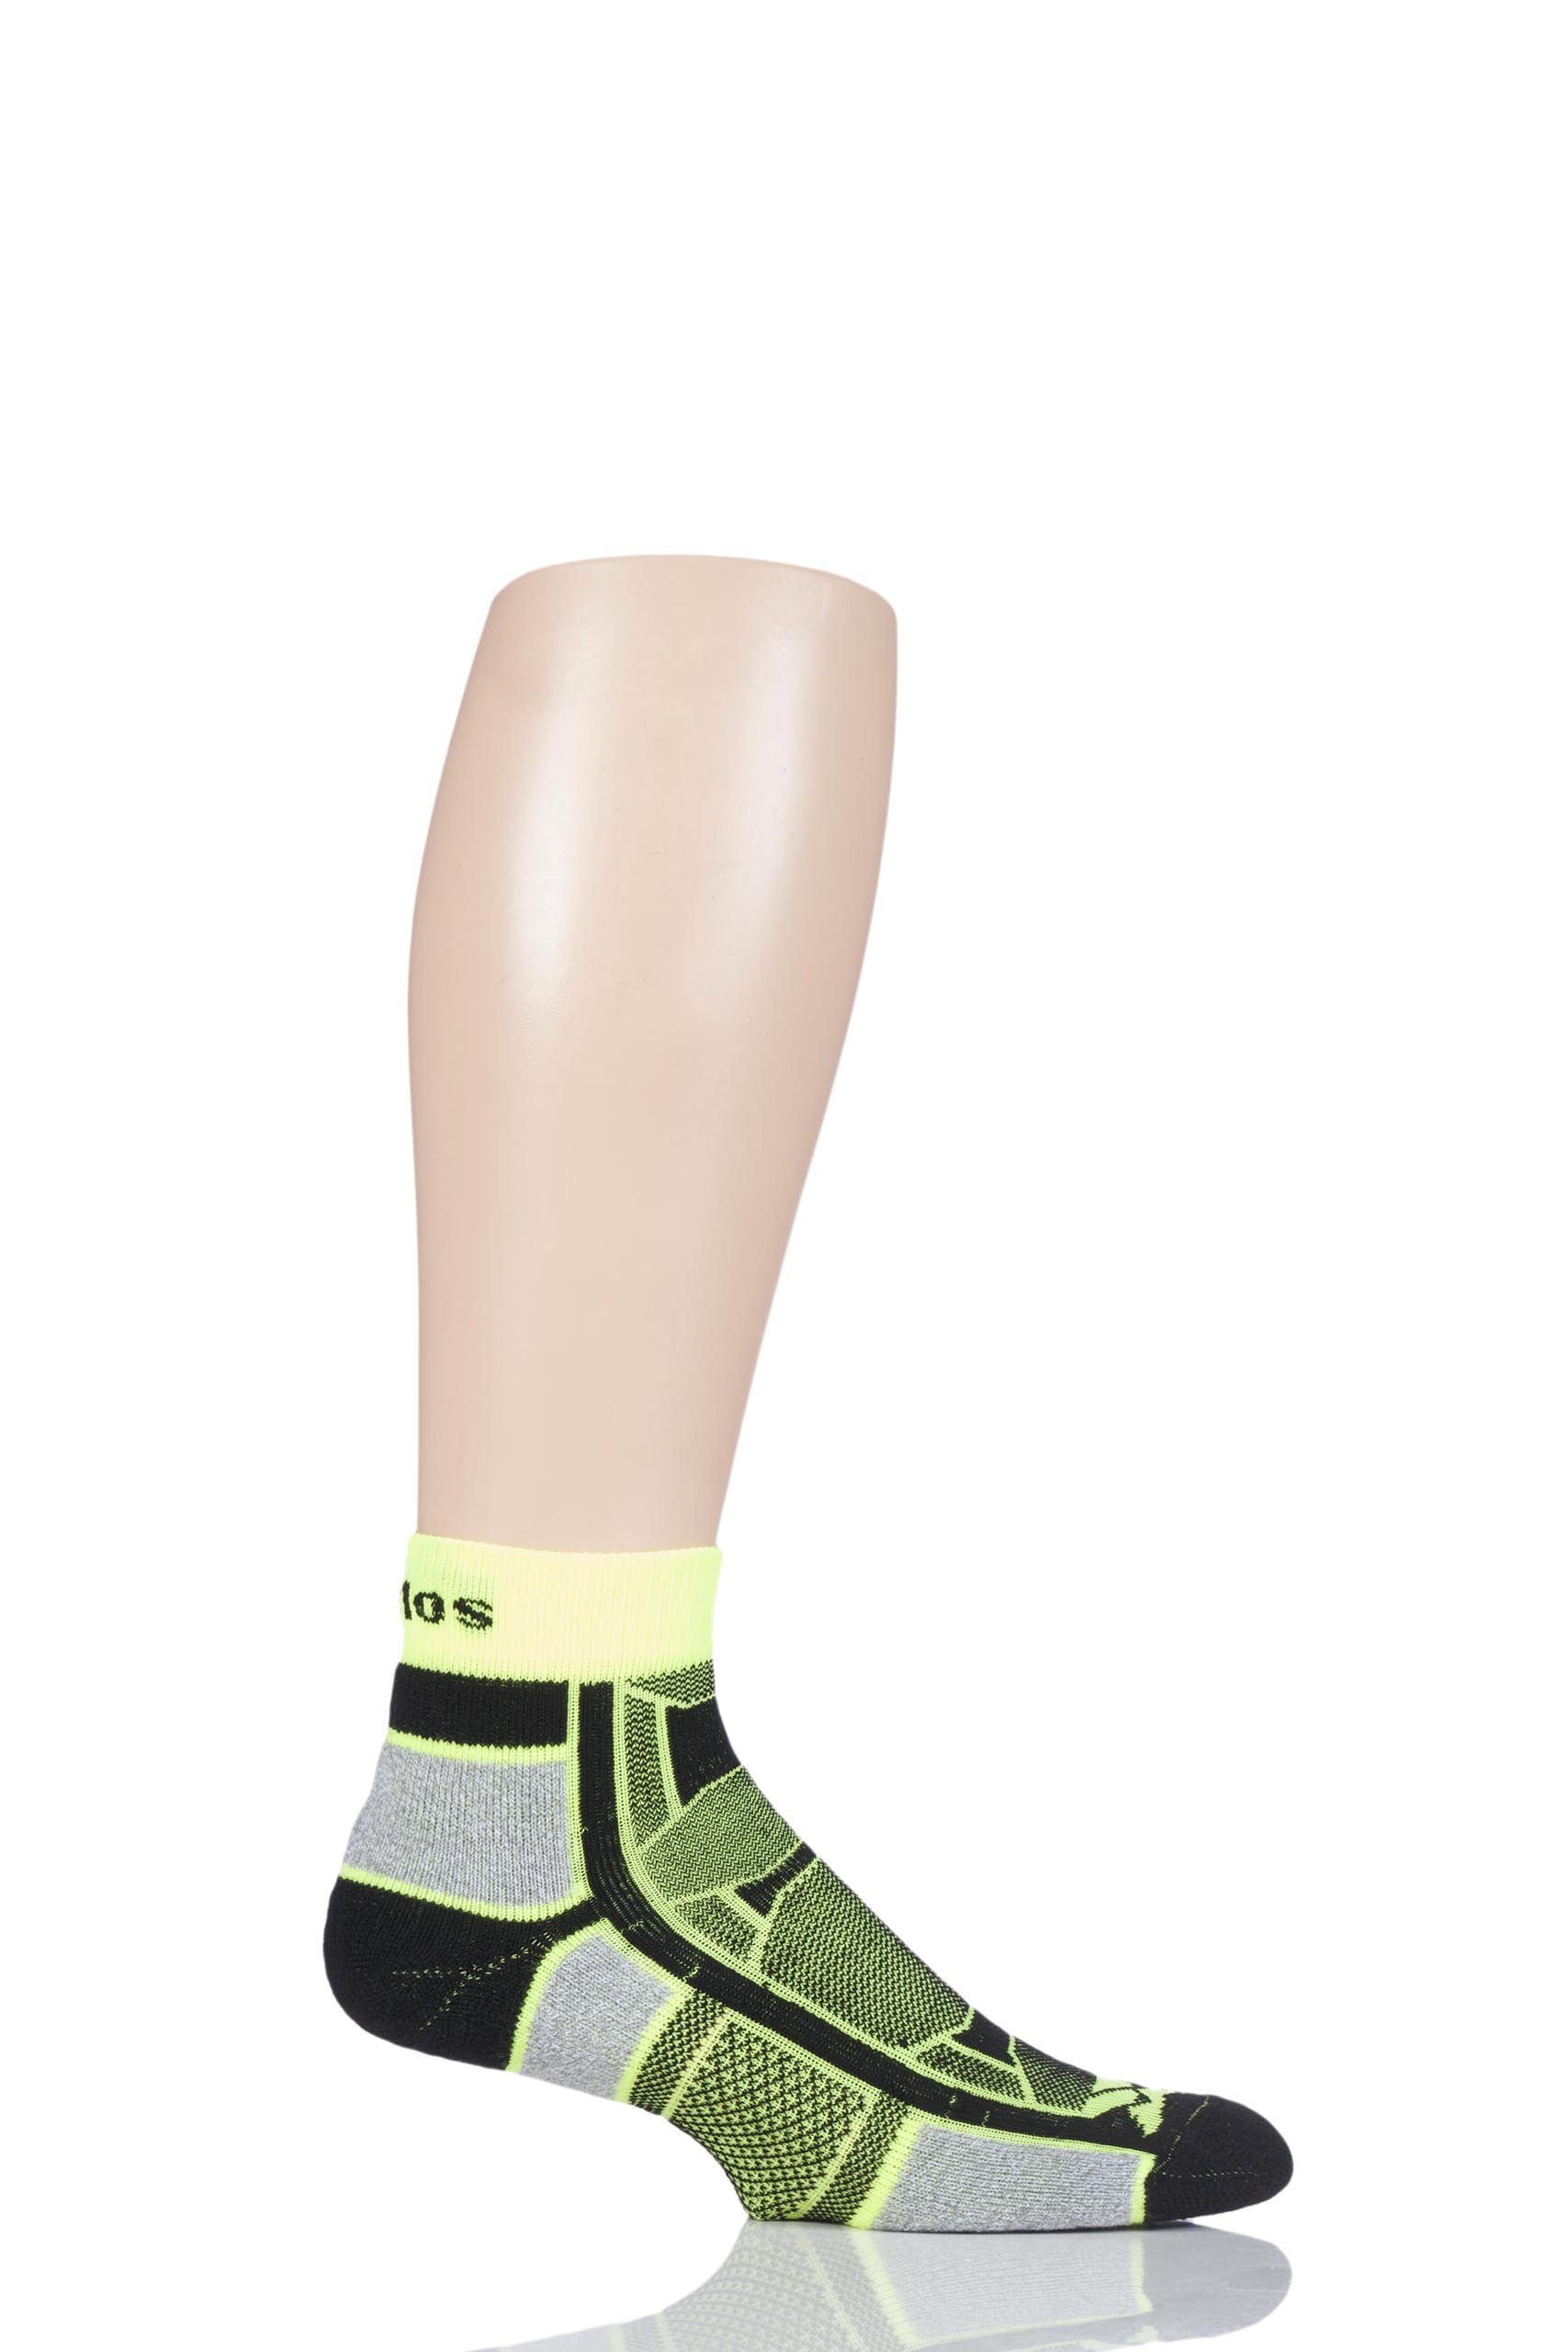 Men's and Ladies' 1 Pair Thorlo Outdoor Athlete Walking Socks - Yellow Jacket 10.5-11.5 Unisex